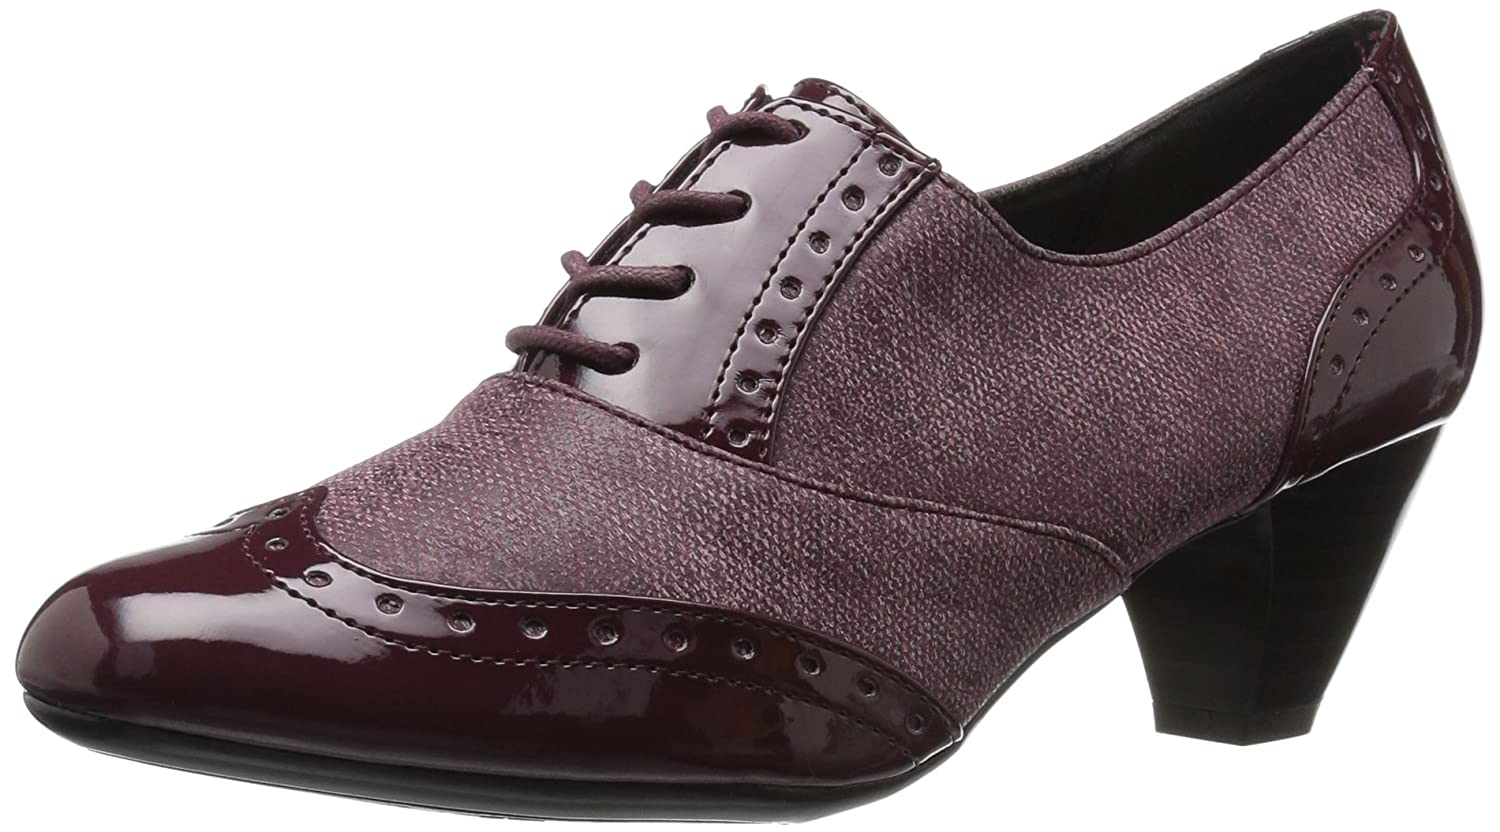 Soft Style by Hush Puppies Women's Gianna Dress Pump B01MUDSN0E 11 3E US|Bordeaux Faux Tweed/Patent